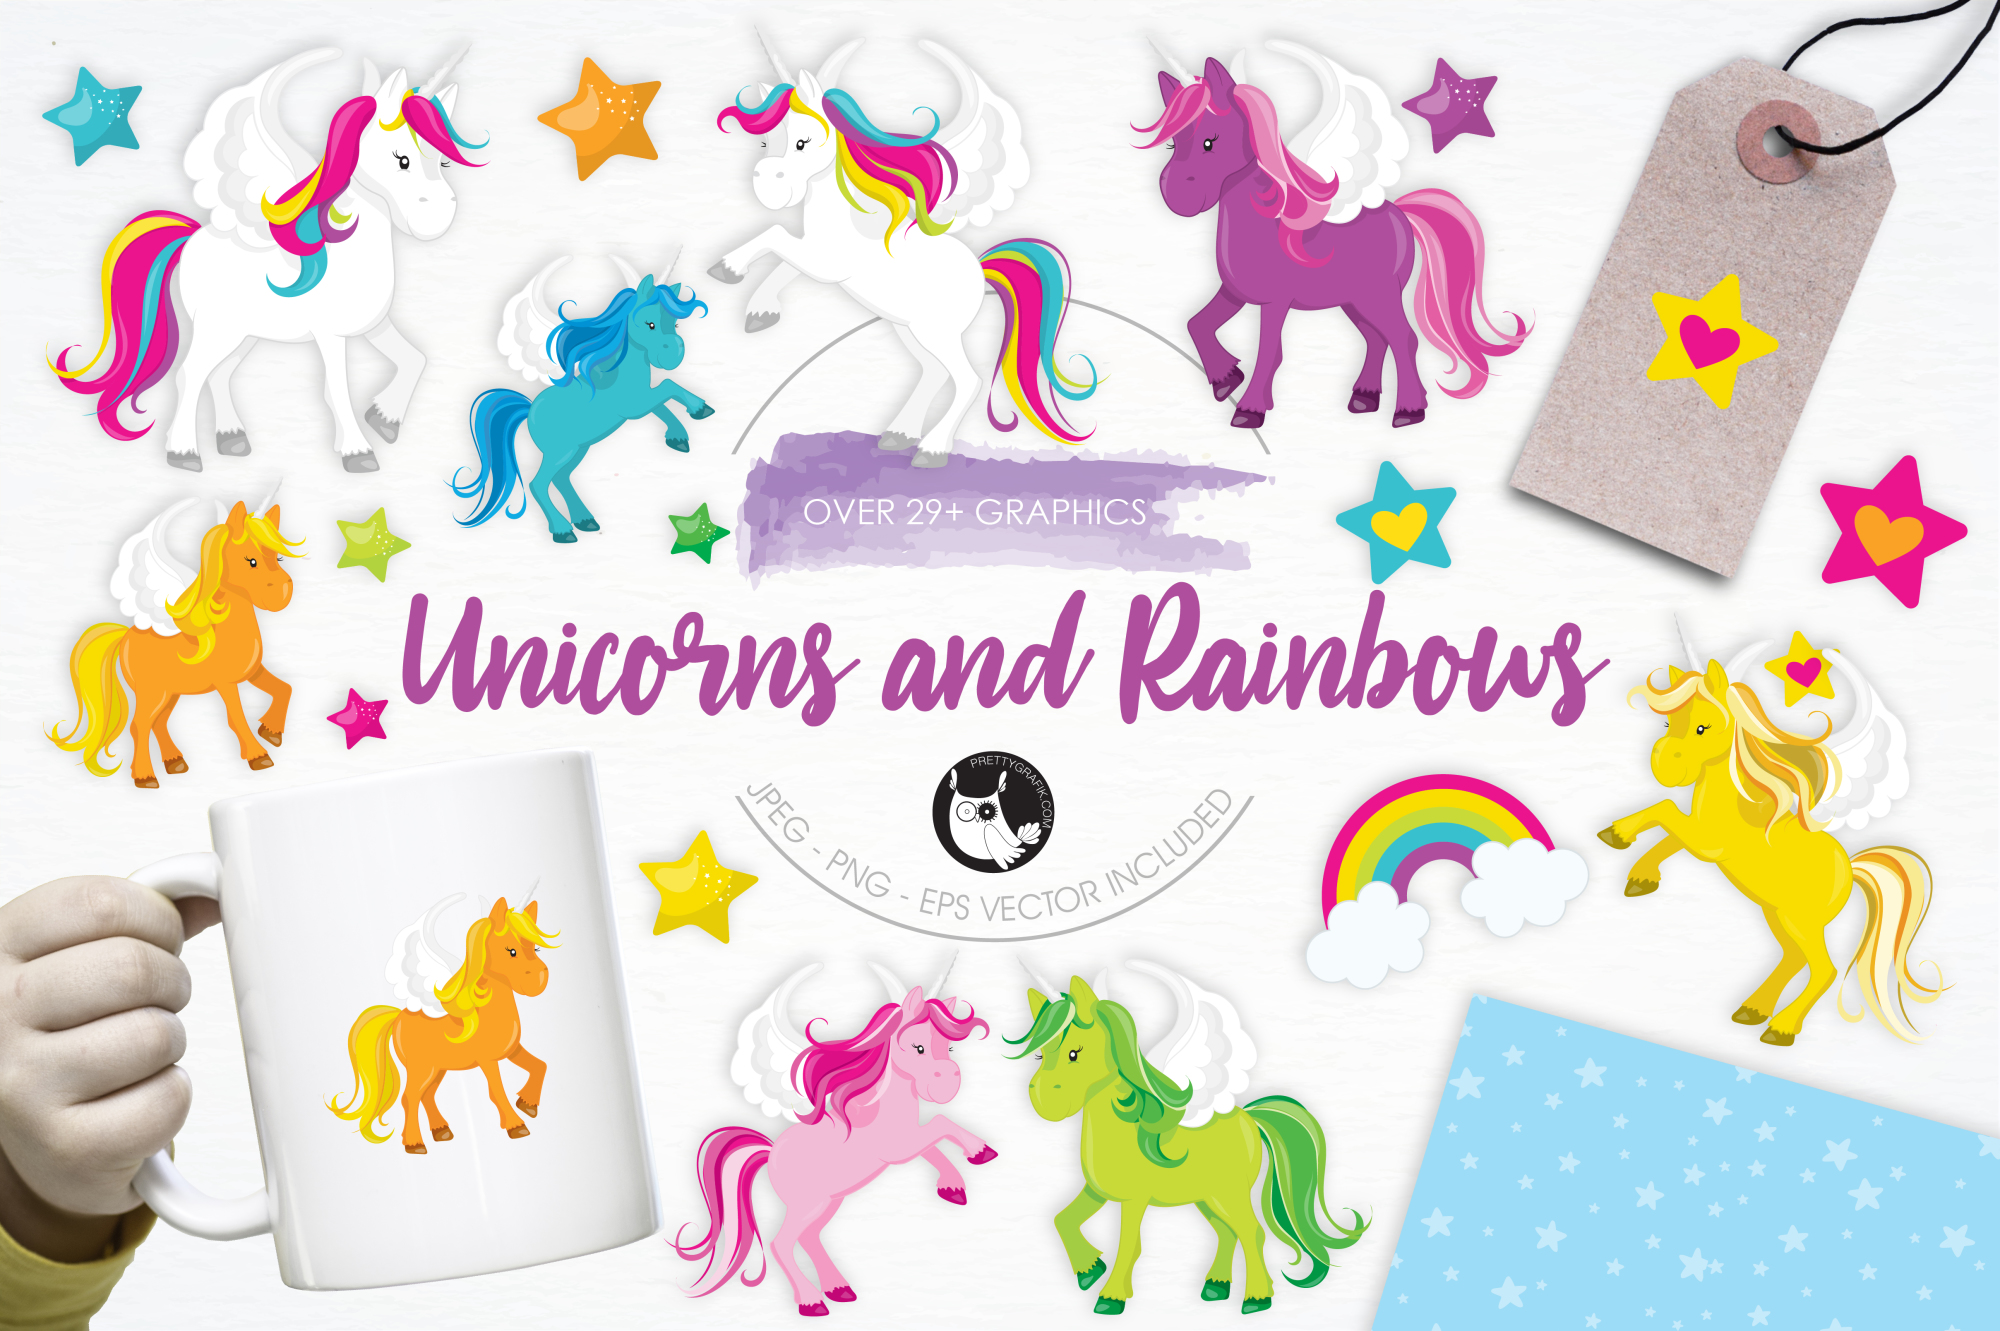 Unicorns and Rainbows graphics and illustrations example image 1